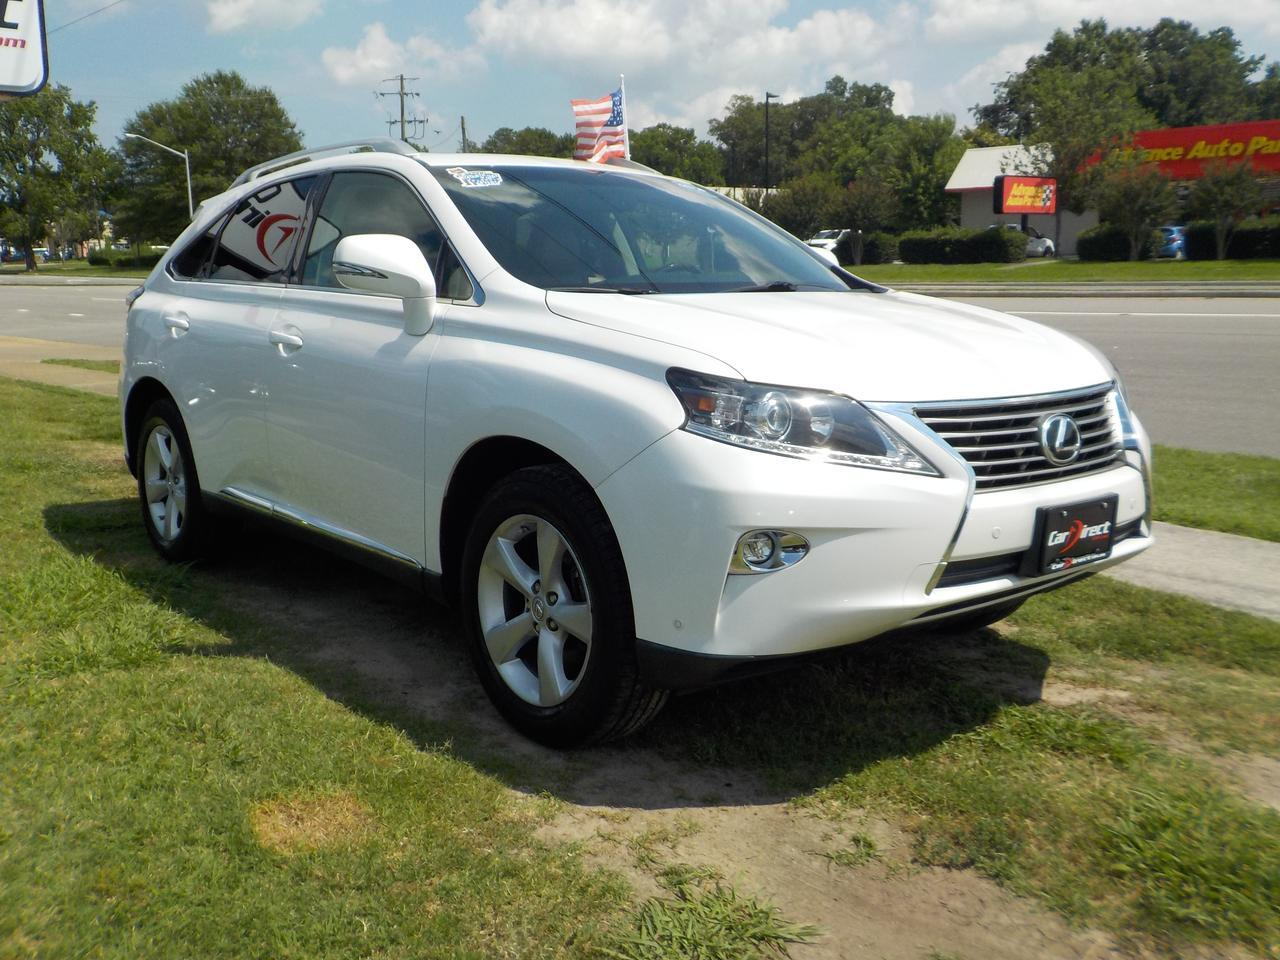 2015 LEXUS RX 350 AWD, NAVIGATION, CLIMATE SEATS, SUNROOF, PARKING SENSORS, BLUETOOTH, ONLY 37K MILES NEW!!!